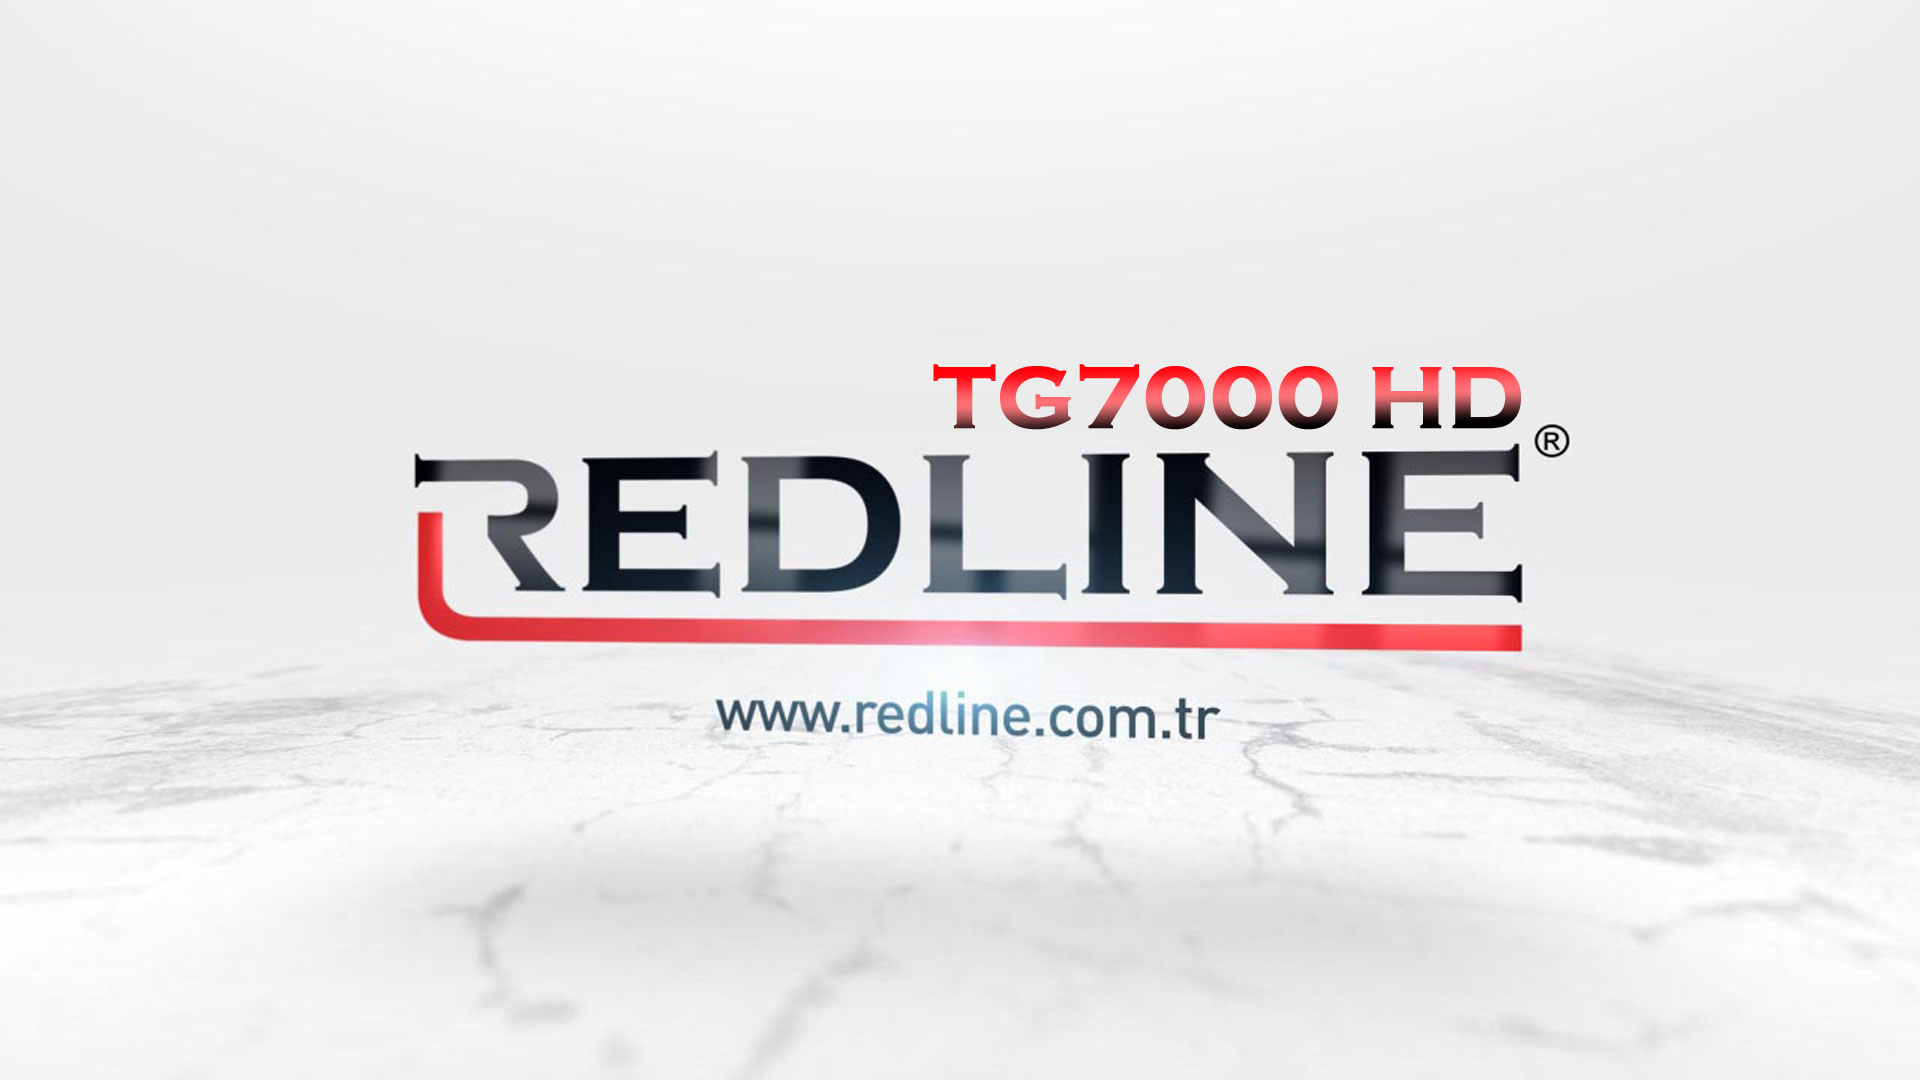 Download Firmware Redline TG 7000 HD New Software Receiver